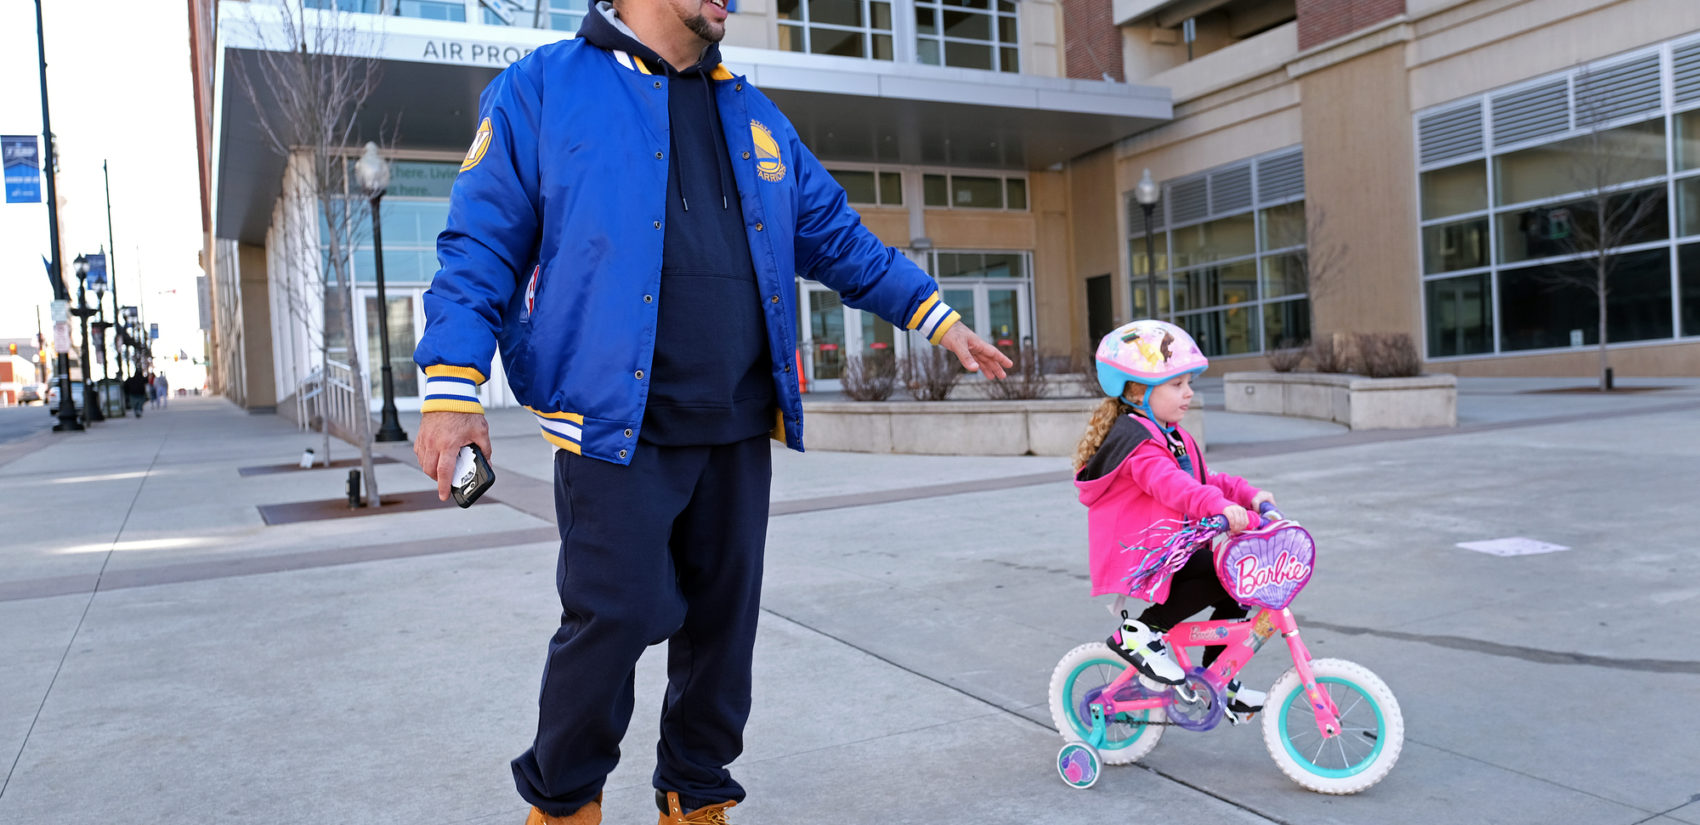 Edward Zayas, Jr., of Allentown, walks with his stepdaughter Avery Green, 4, as she rides her bike near the PPL Center in Allentown. Zayas is a chef at a bistro and has been working a lot to accommodate the increased demand for takeout and delivery orders.